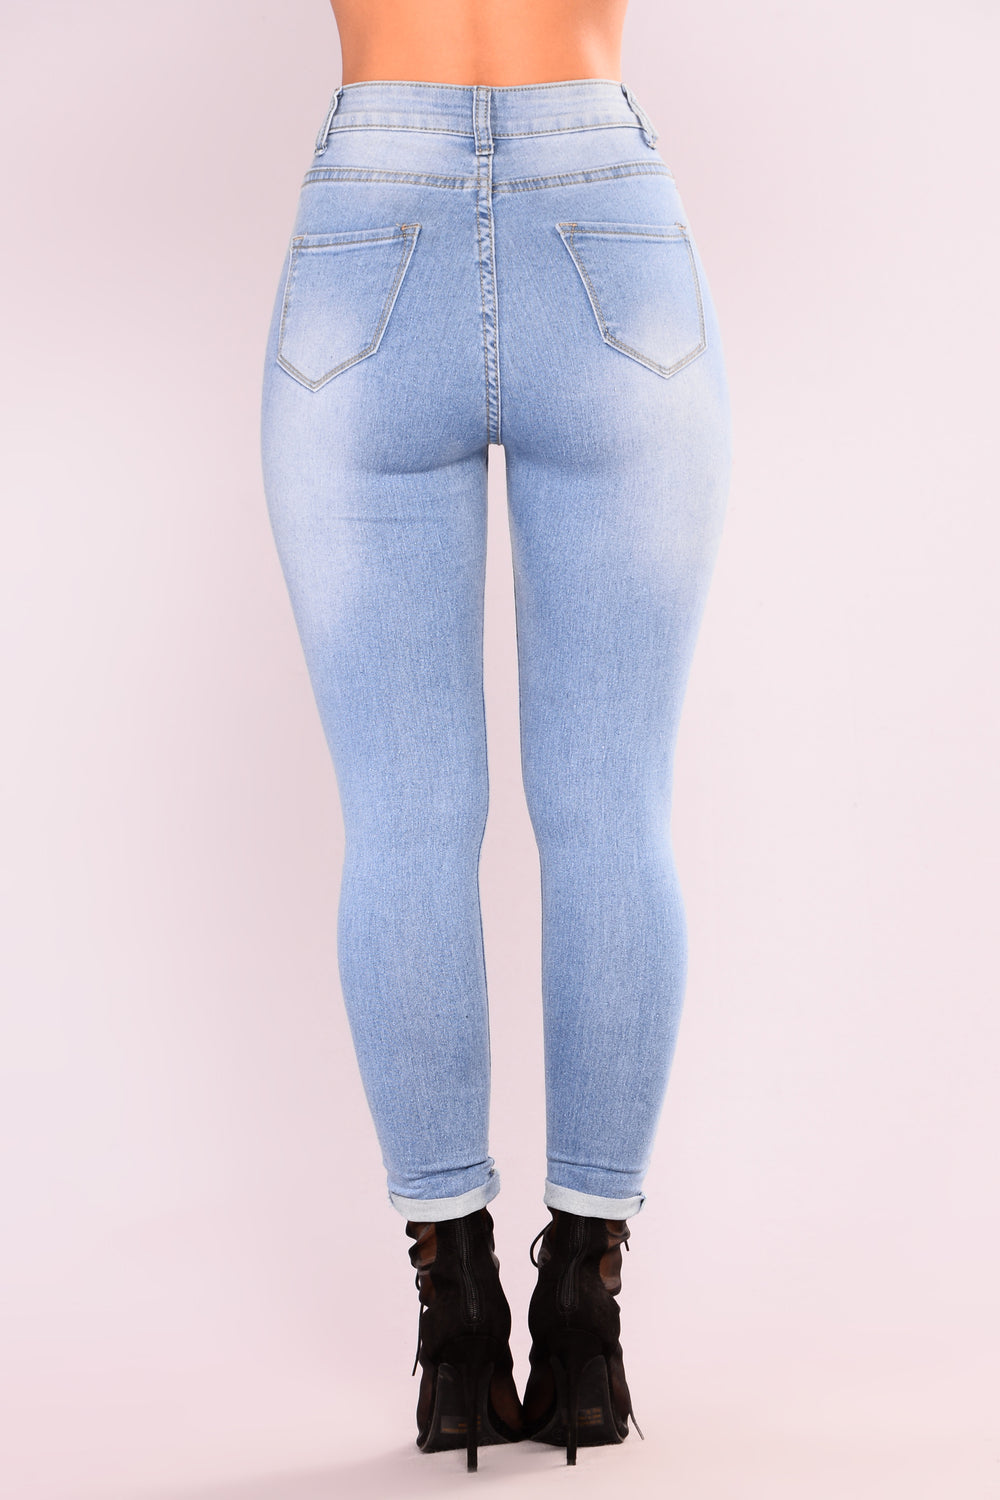 Hottie With A Body Ankle Jeans - Light Blue Wash